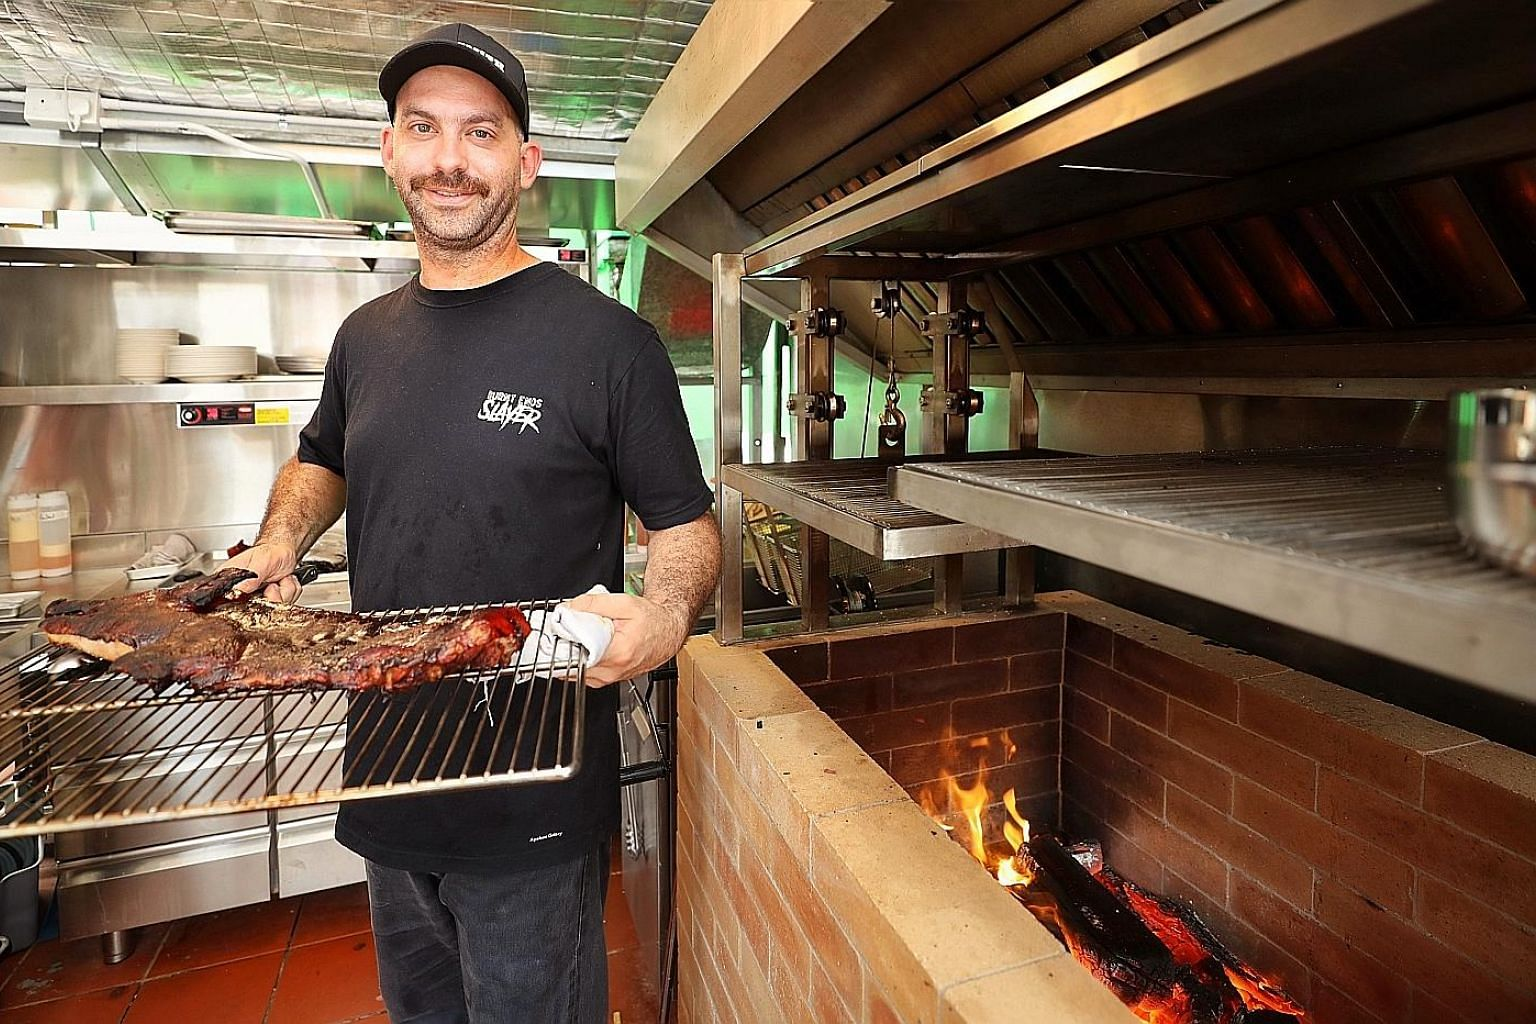 Chef David Pynt's Meatsmith Western BBQ will serve barbecue dishes, including smoked suckling pig, cooked in a brick grill fired with jarrah, an Australian hardwood.